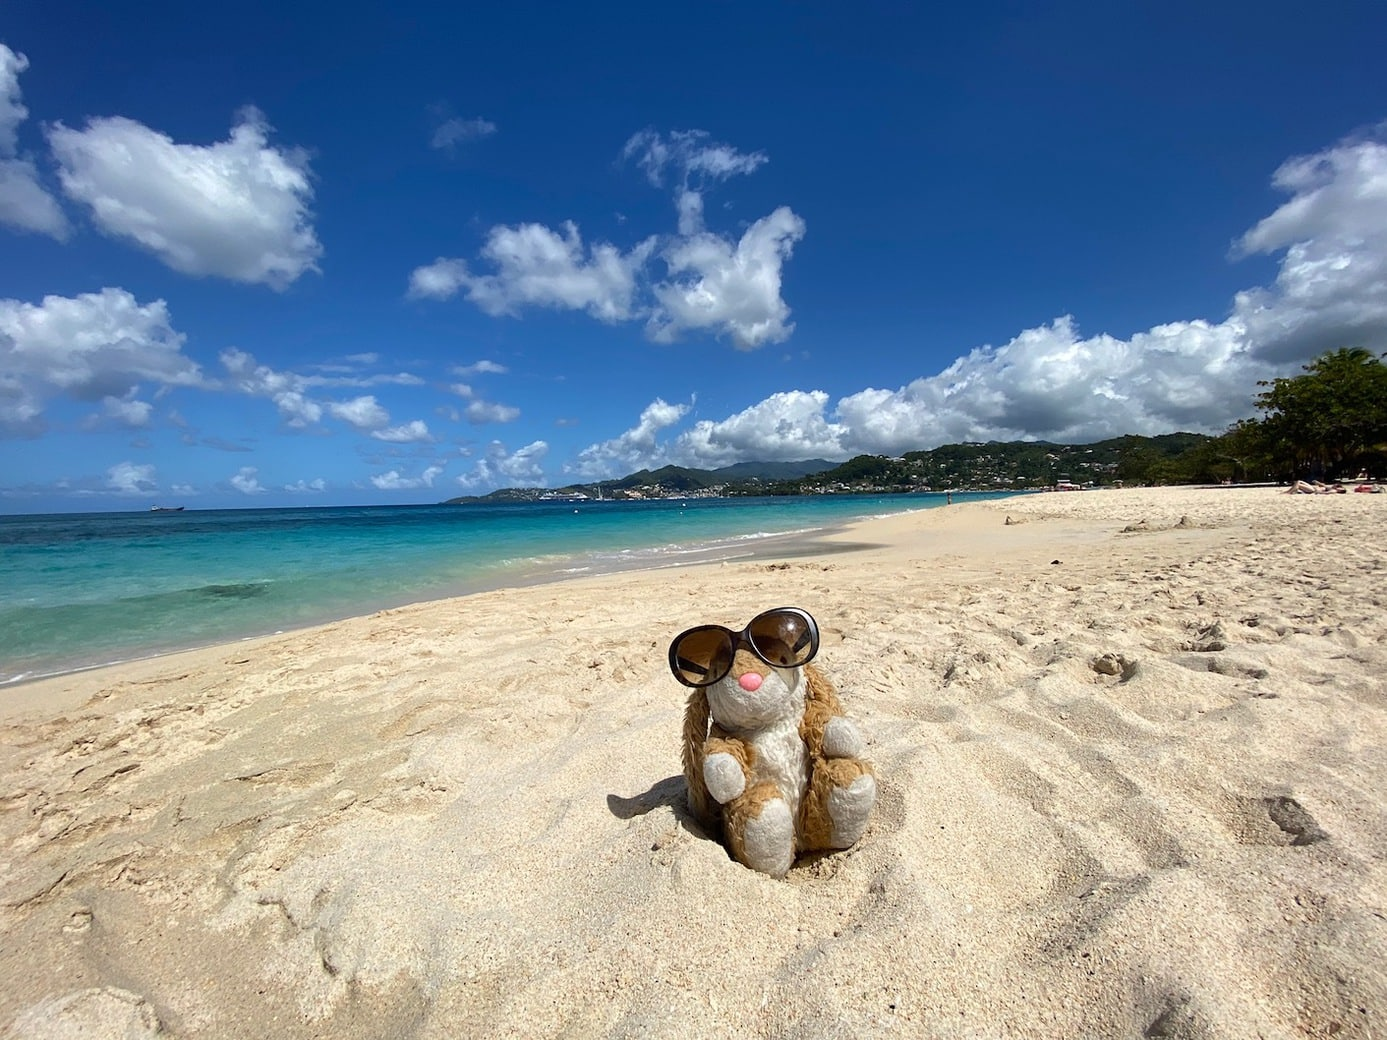 Grenada's most famous beach